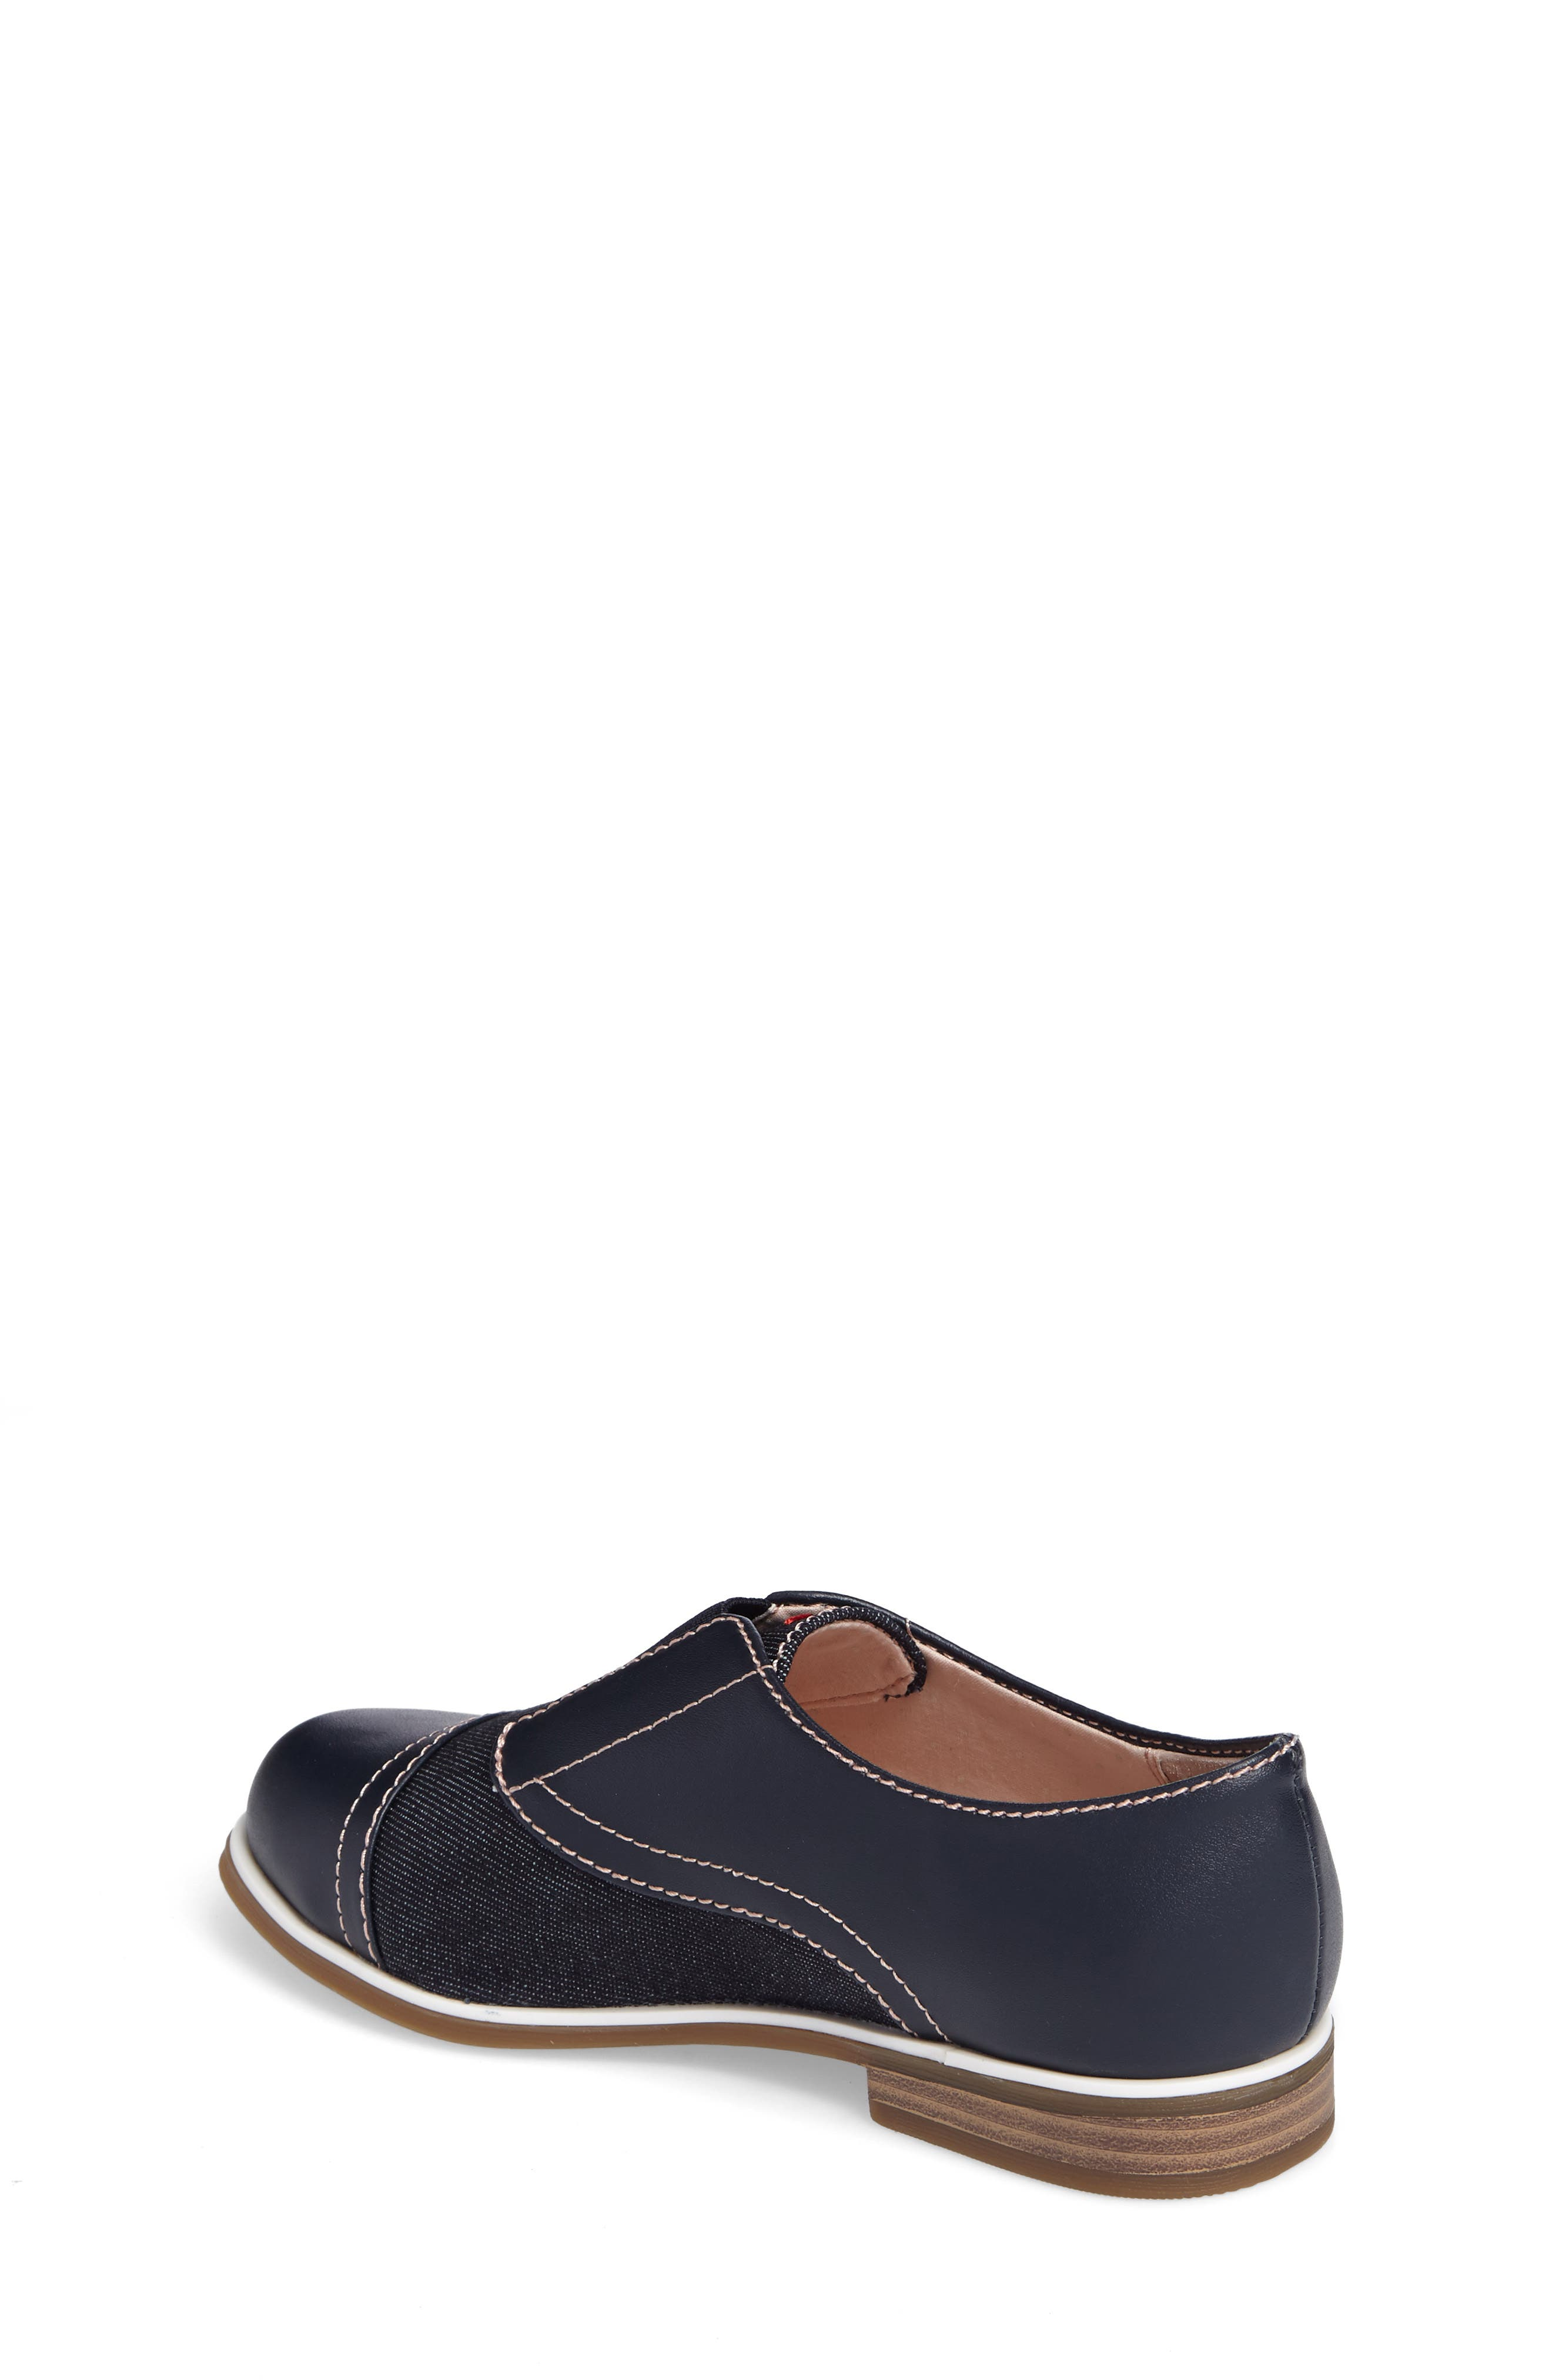 Alternate Image 2  - ED Ellen Degeneres Kassie Laceless Cap Toe Oxford (Toddler, Little Kid & Big Kid)